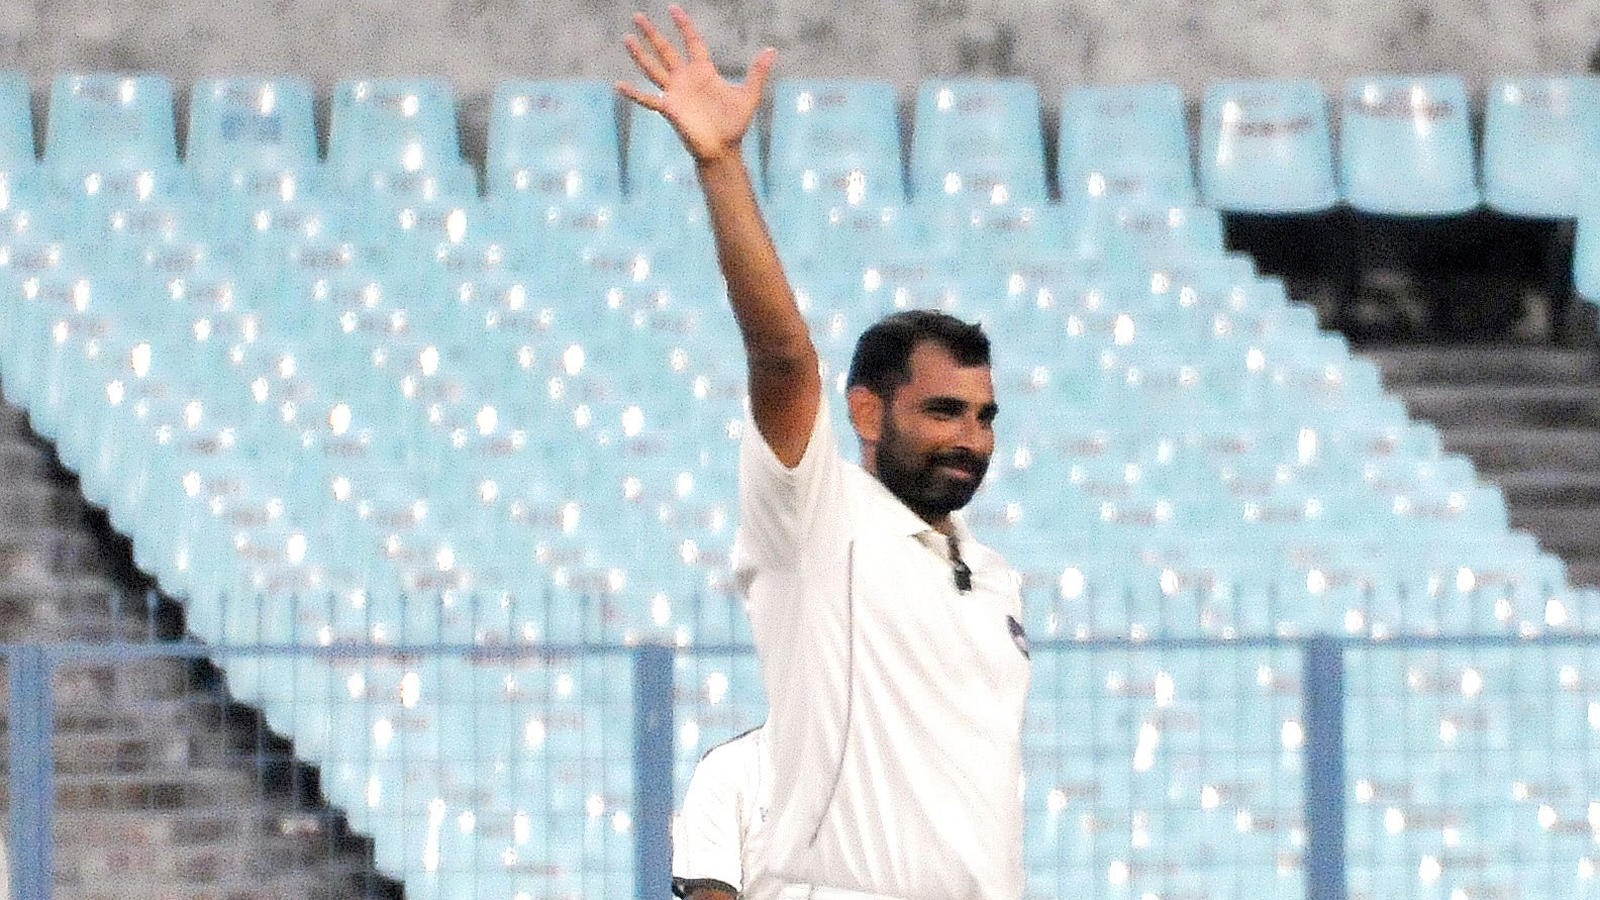 run-after-your-passion-to-achieve-it-shami